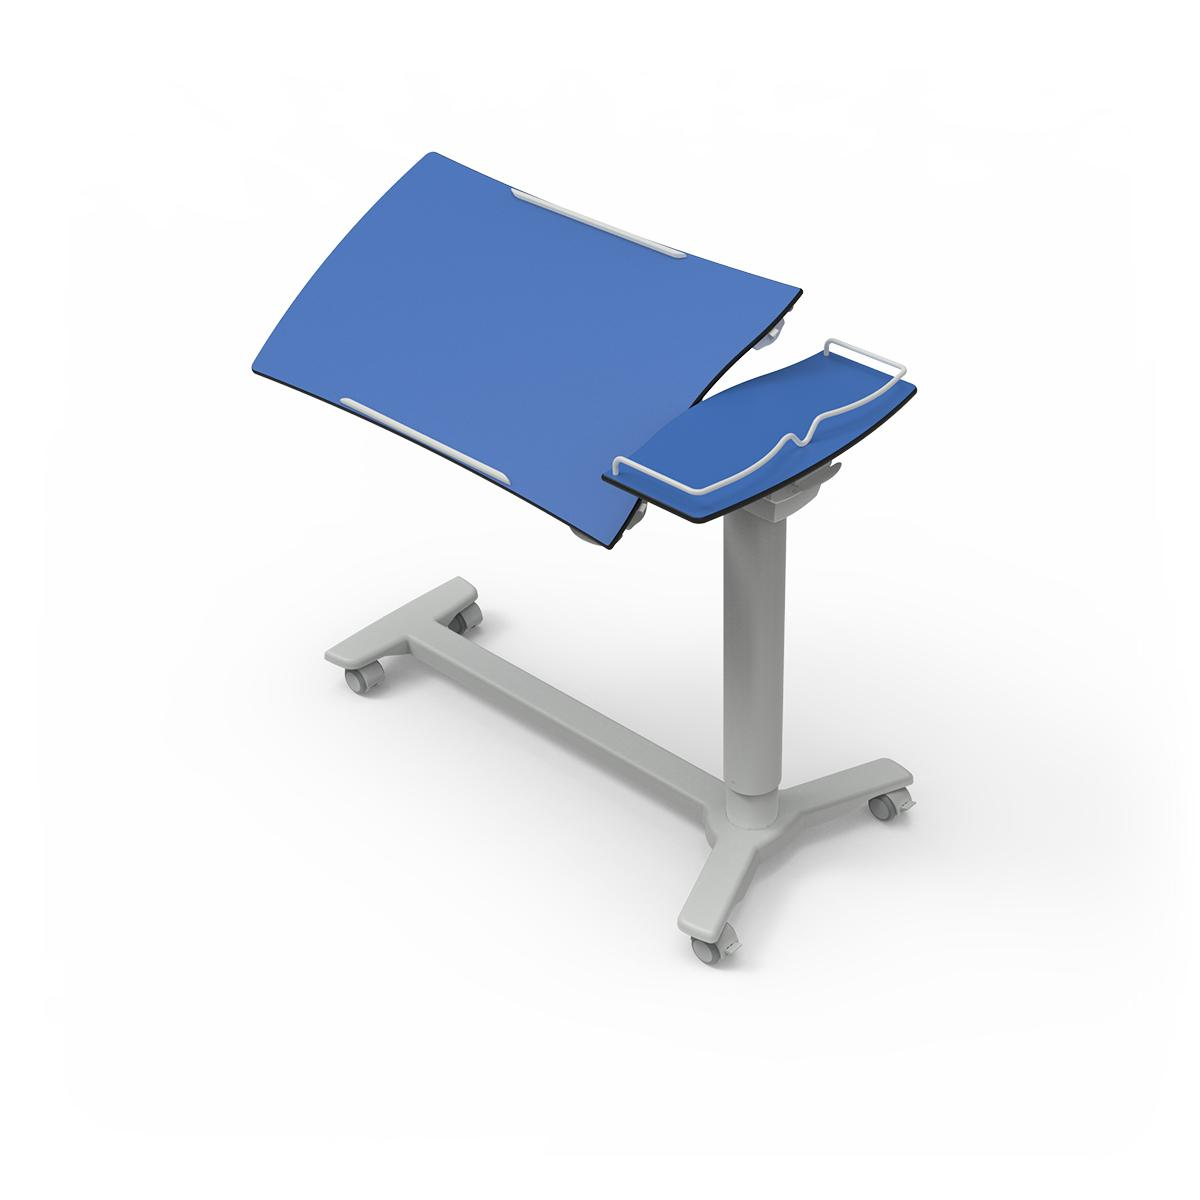 Overbed Table TA270 with h-shaped base and blue top